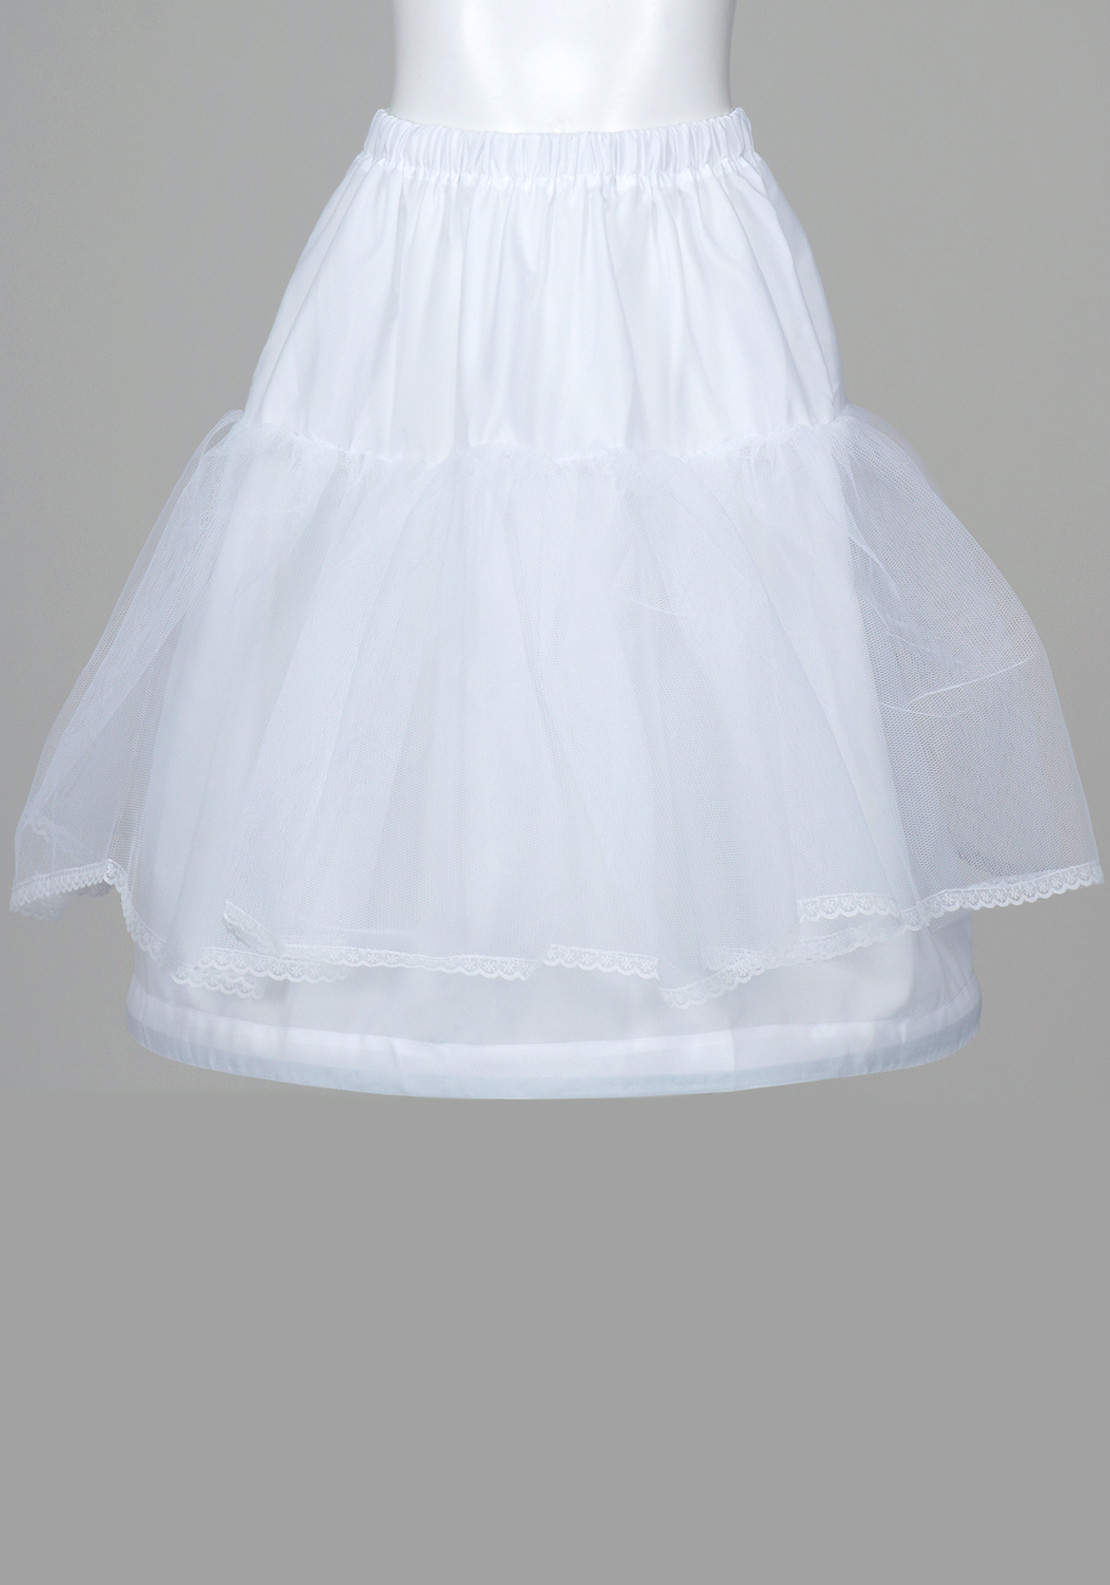 Linzi Jay Communion Net and Hoop Underskirt, White